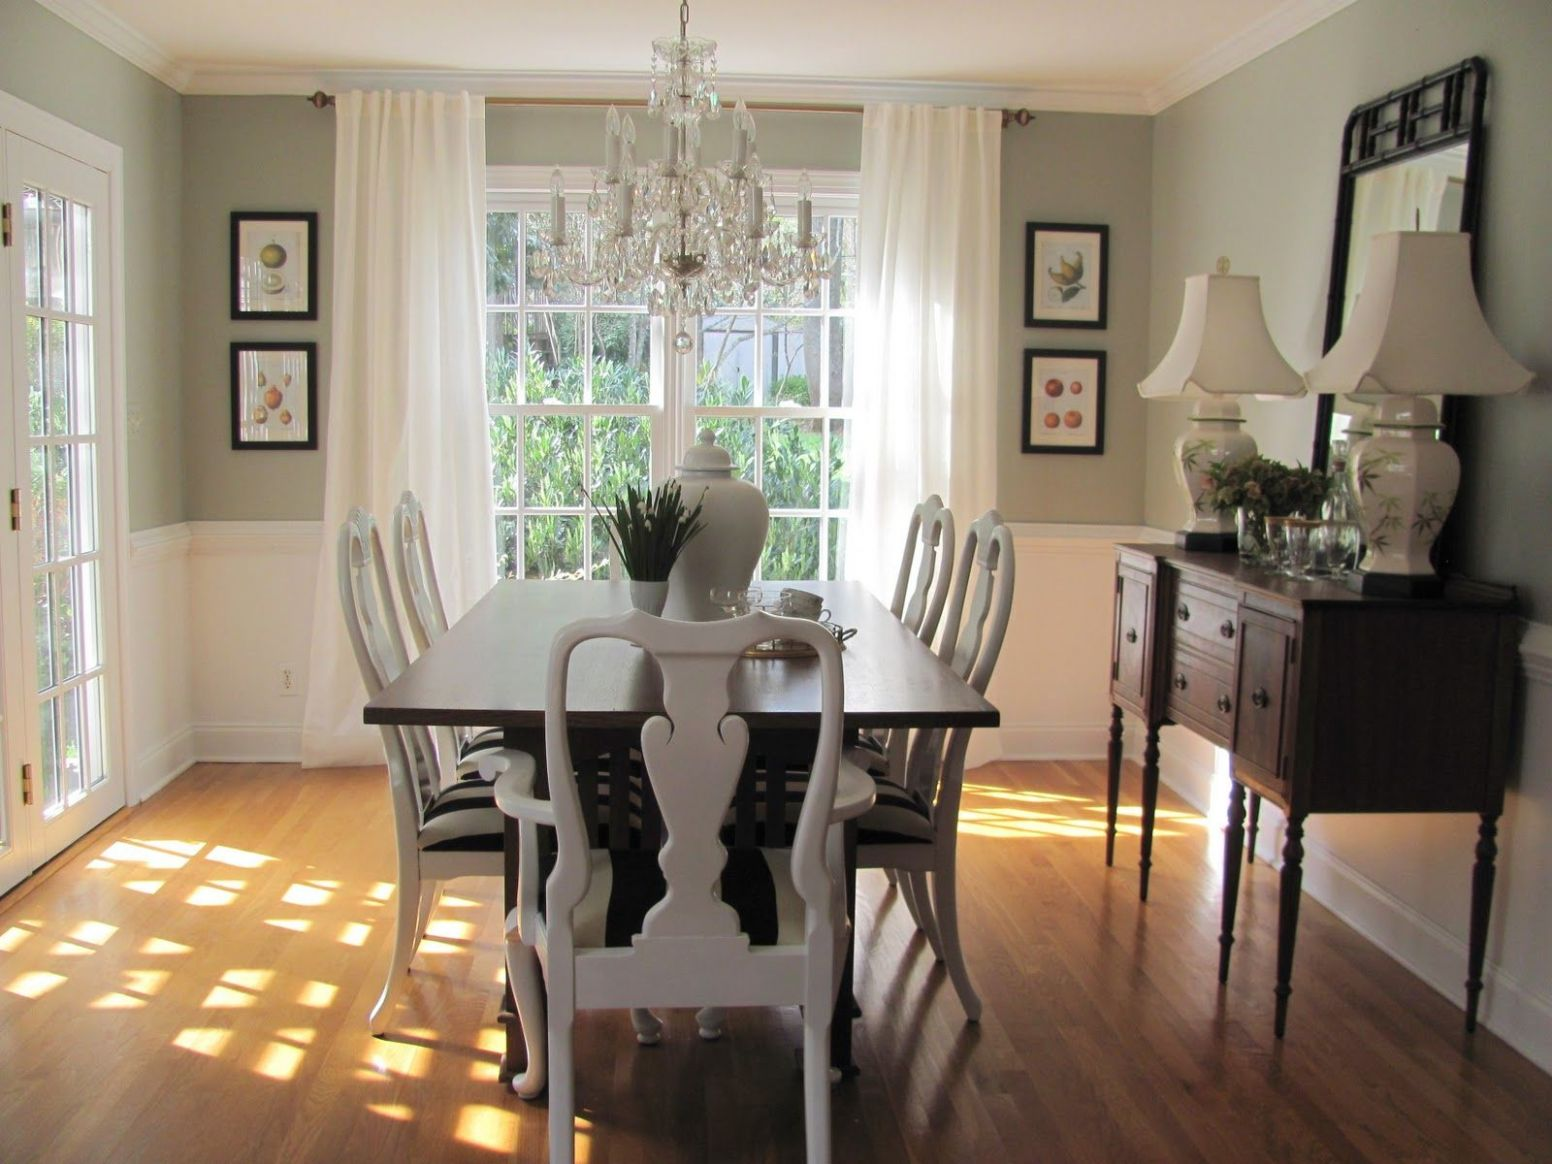 dining room paint colors with chair rail - Google Search | Dining ..